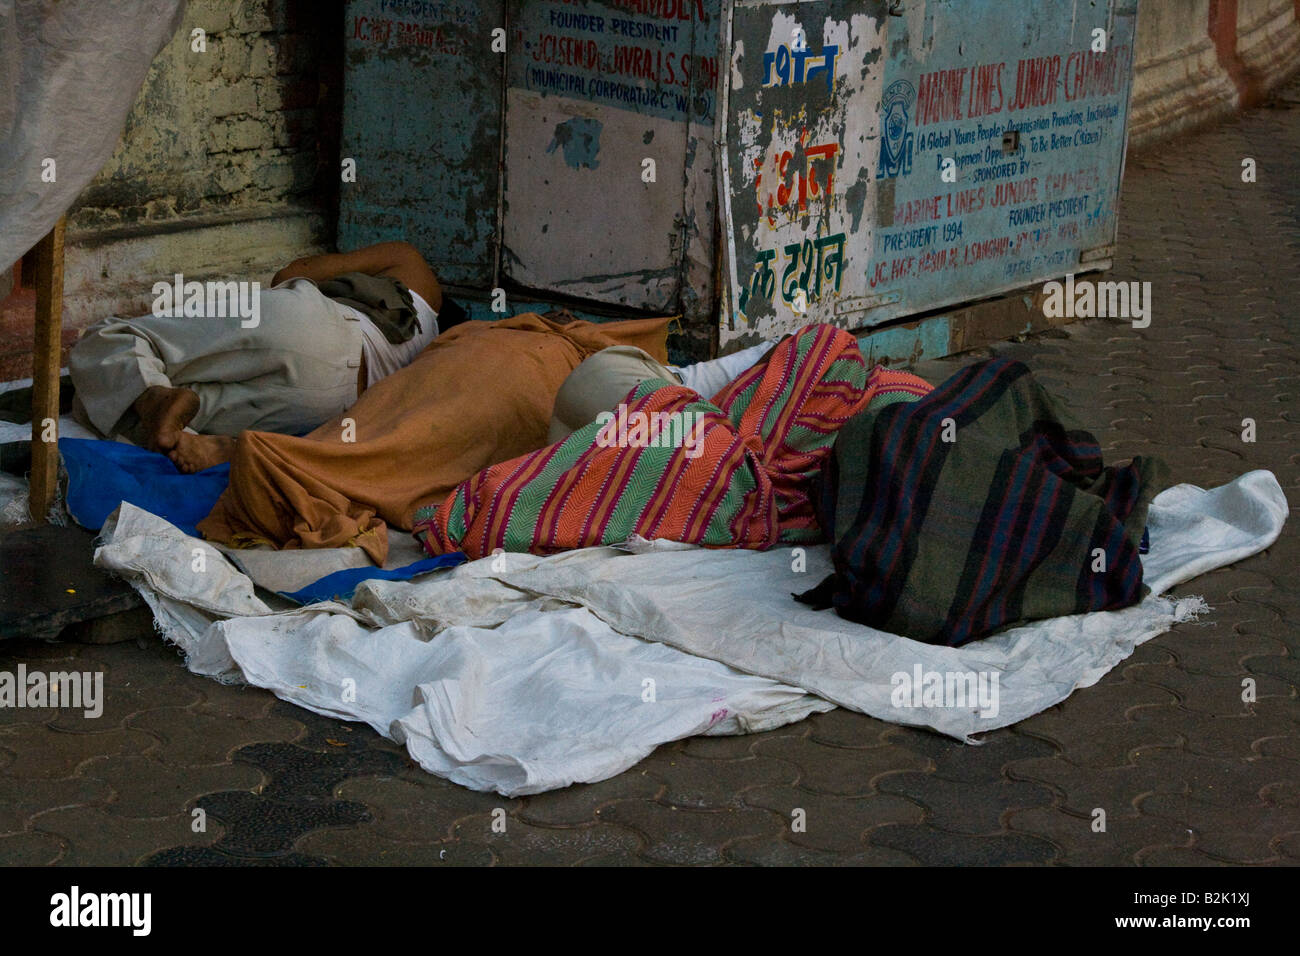 homeless people sleeping in the streets of mumbai south